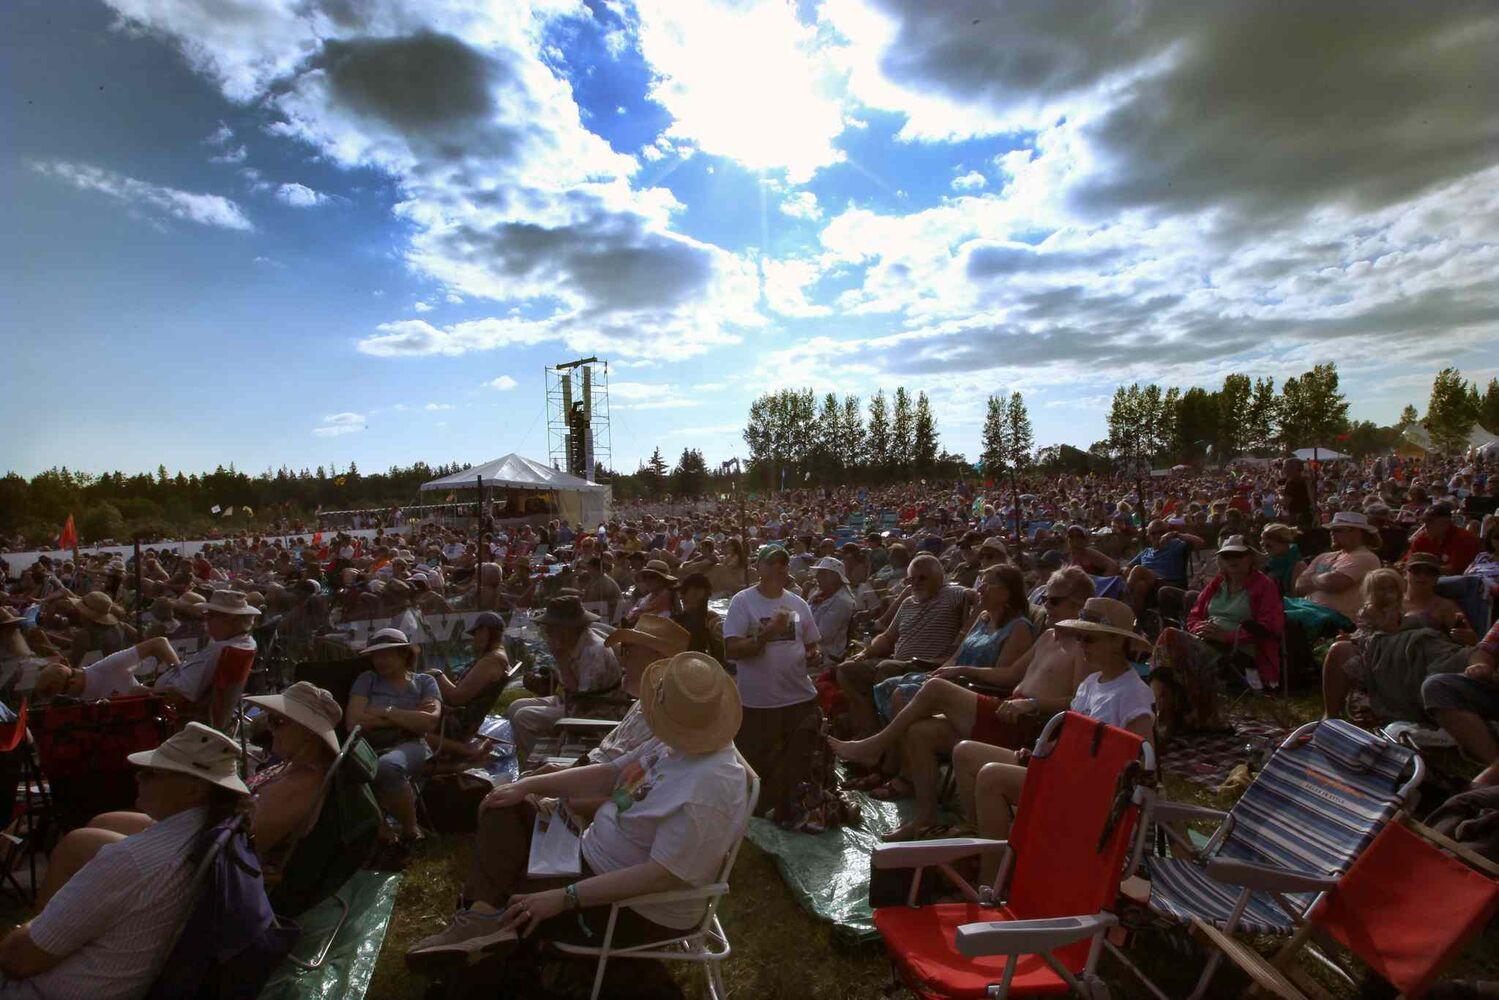 People gather at  Winnipeg Folk Festival Main Stage friday night in Birds Hill Park during a beautiful summer evening- (Joe Bryksa / Winnipeg Free Press)